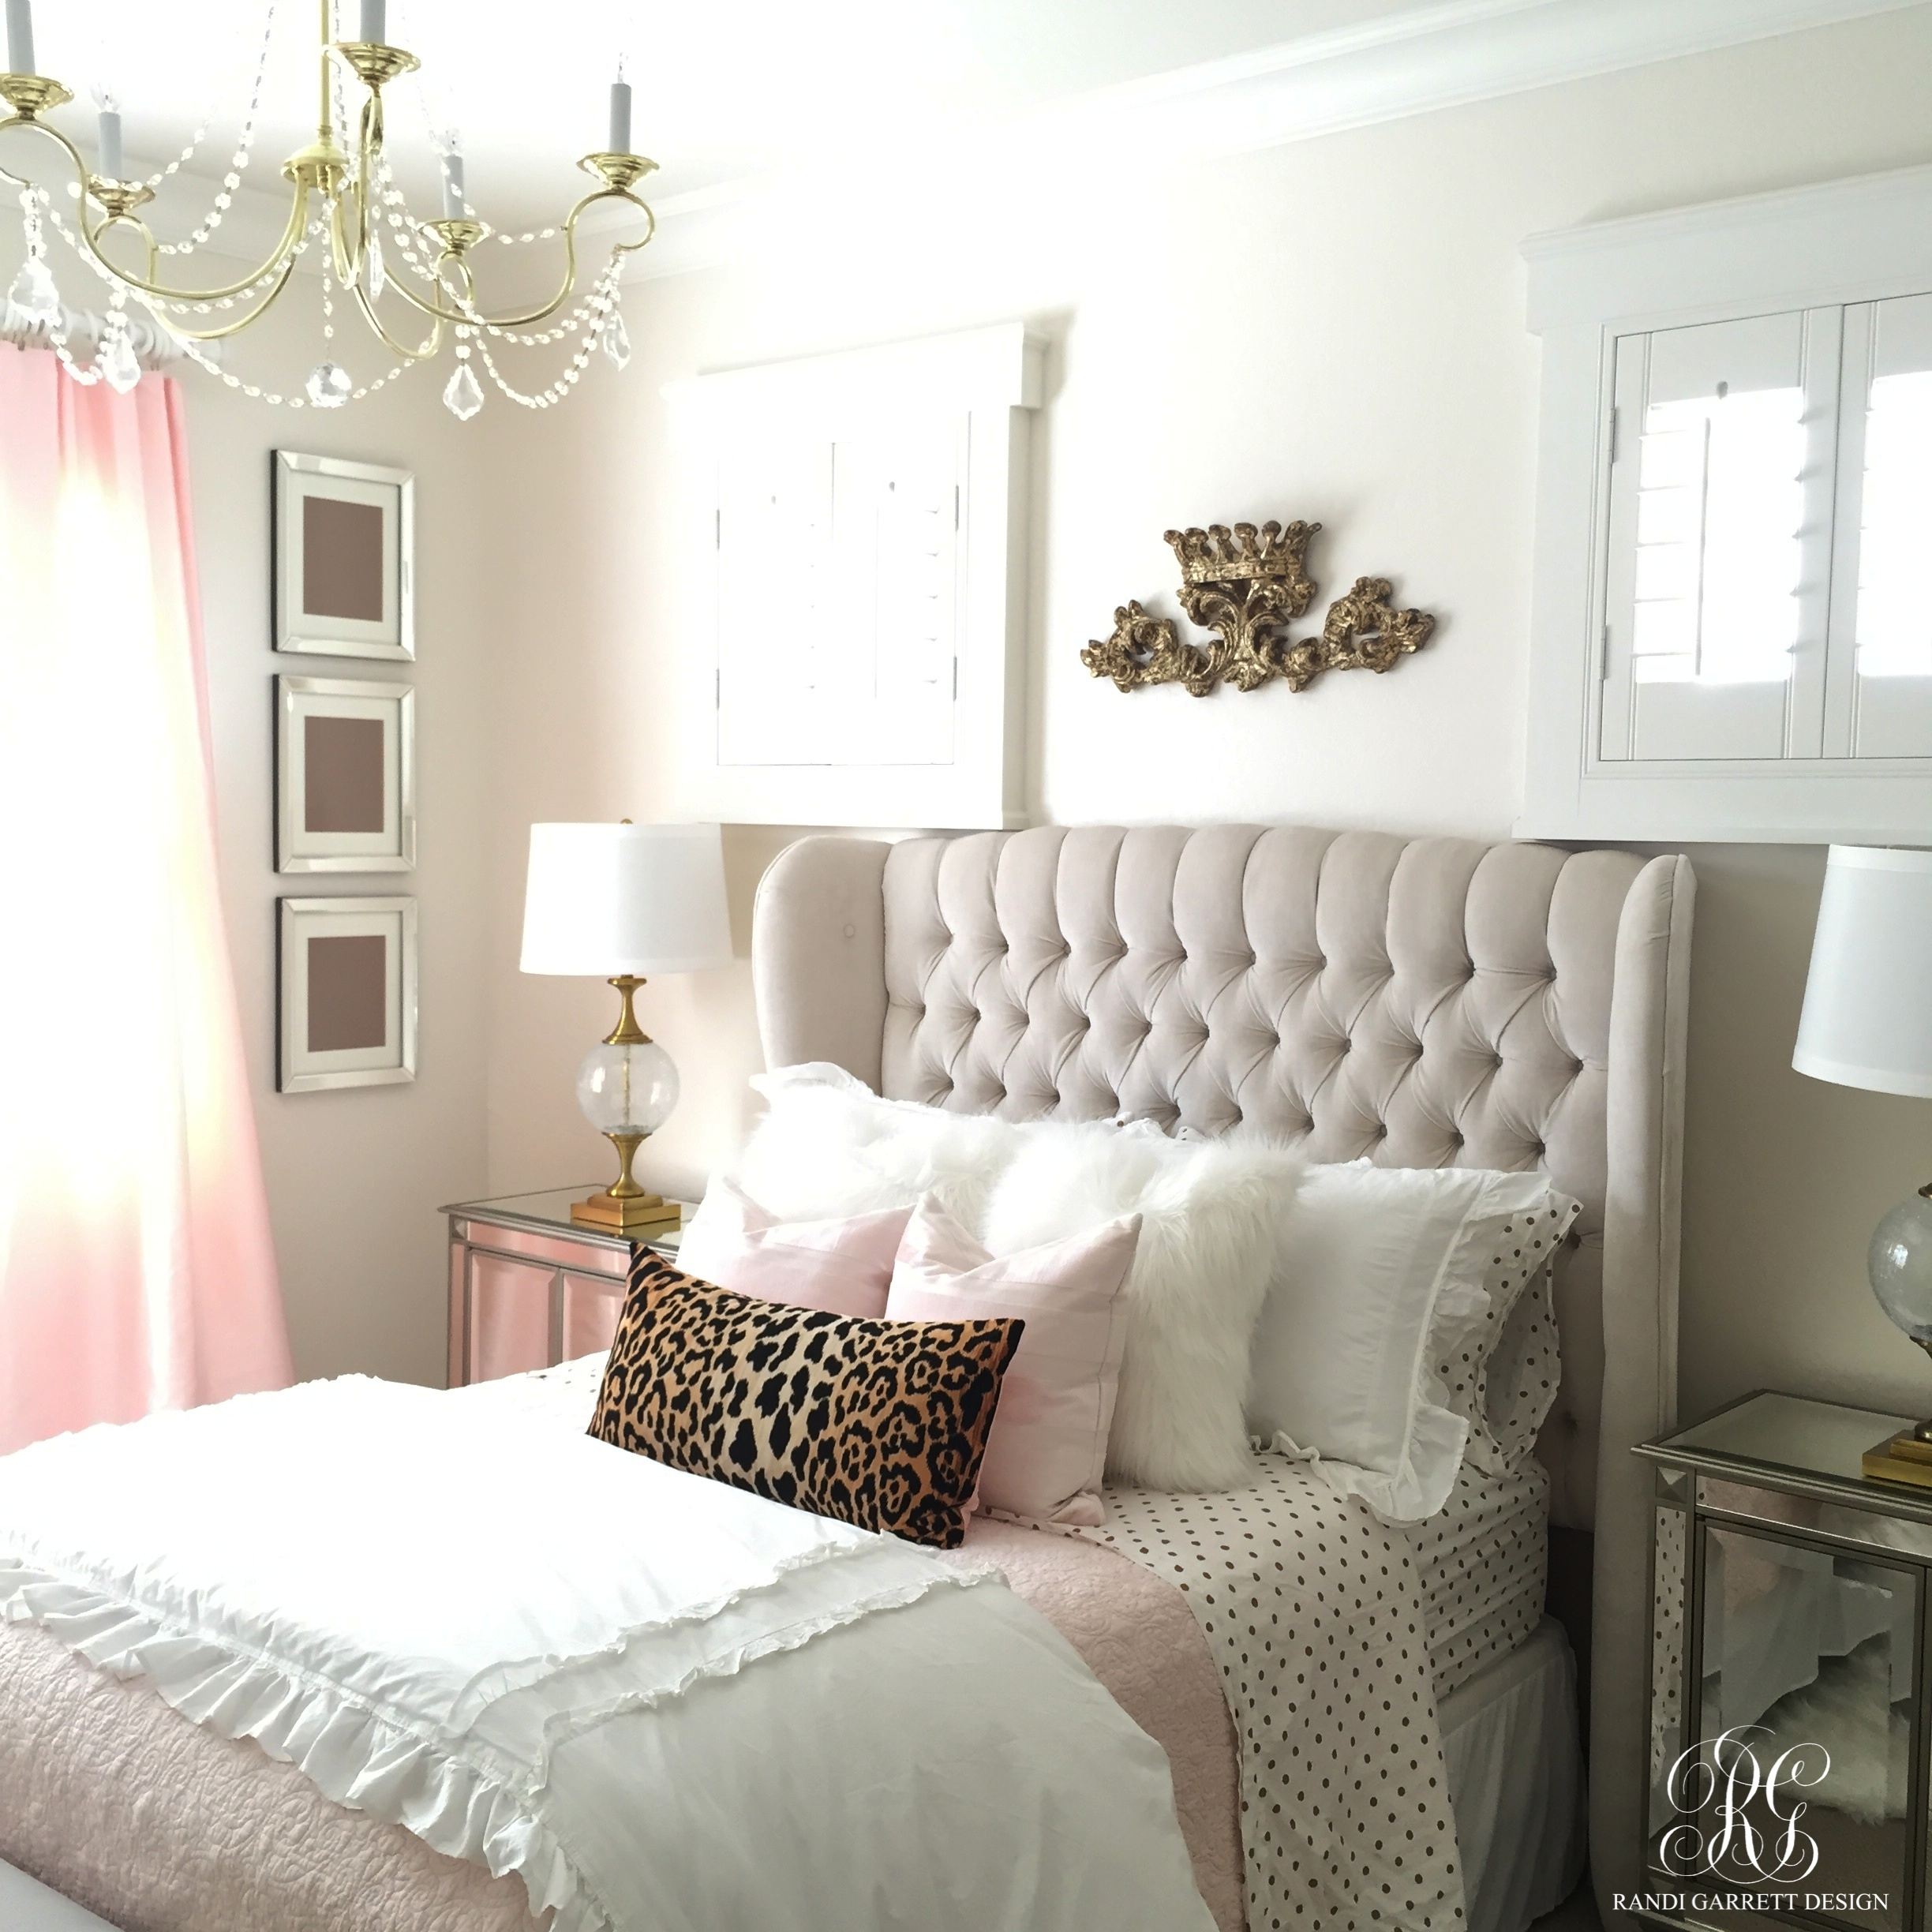 Pink and gold girl 39 s bedroom makeover randi garrett design for Pink grey and white bedroom ideas